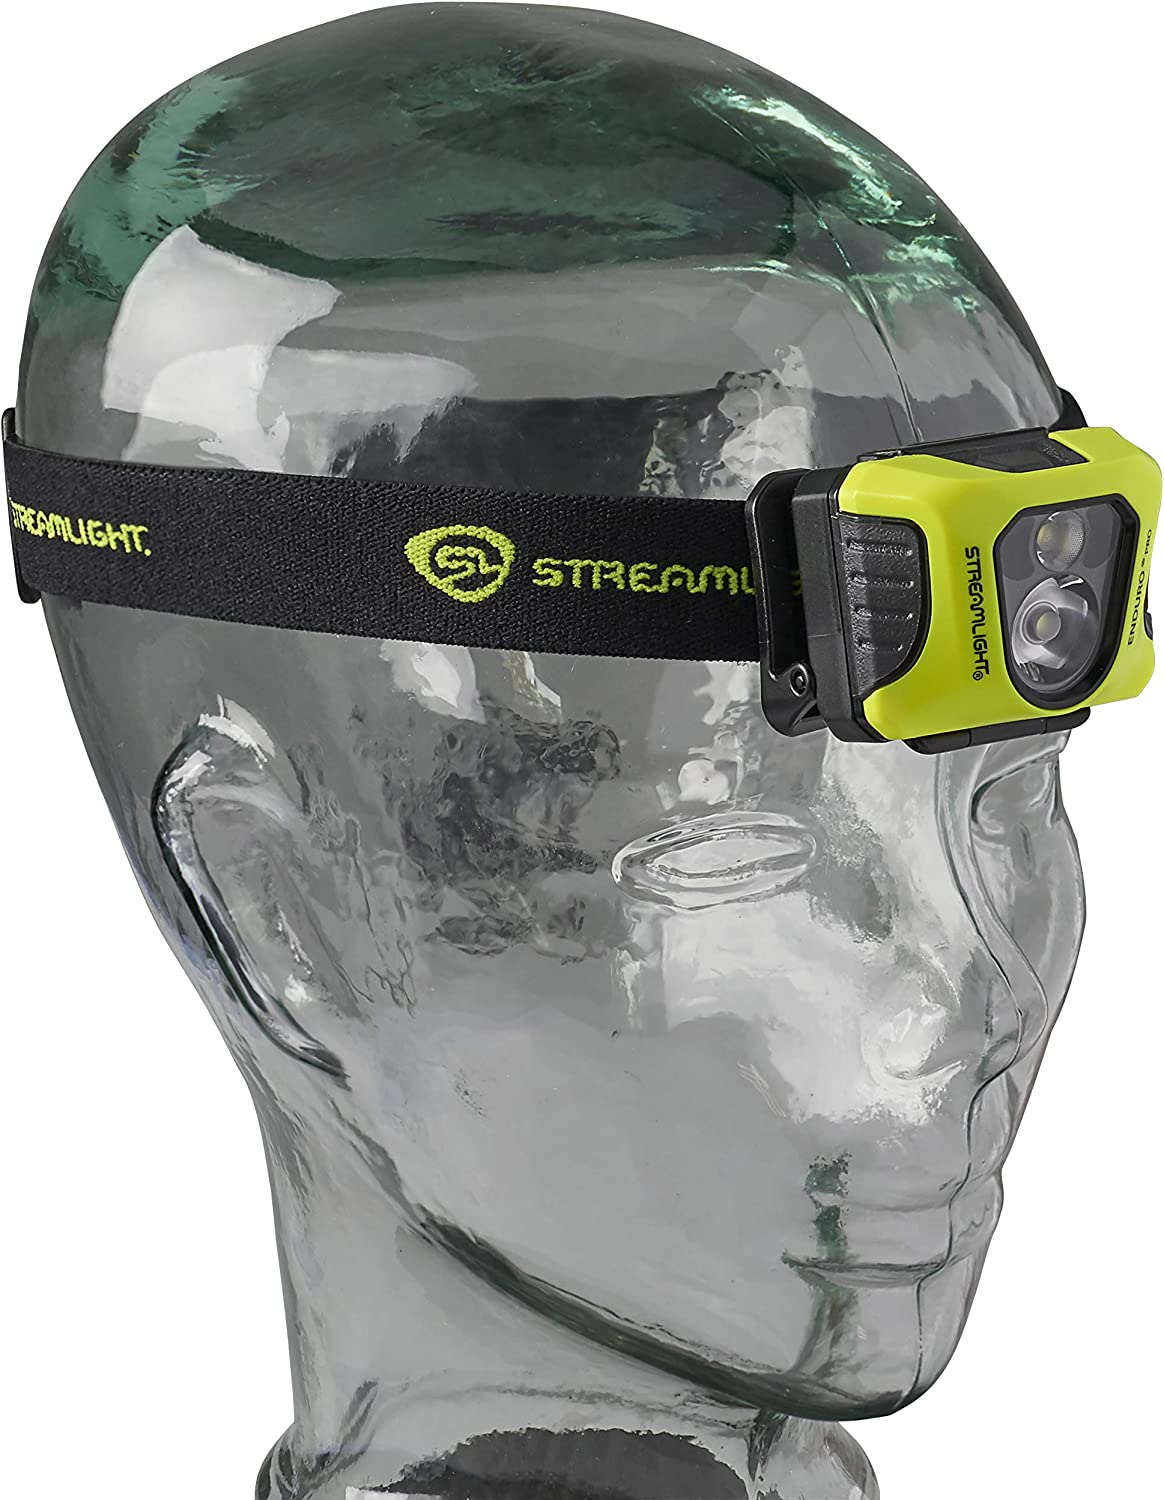 Yellow Streamlight 61435 Enduro Pro USB Rechargeable Multi-Function Head Lamp with Elastic Head Strap